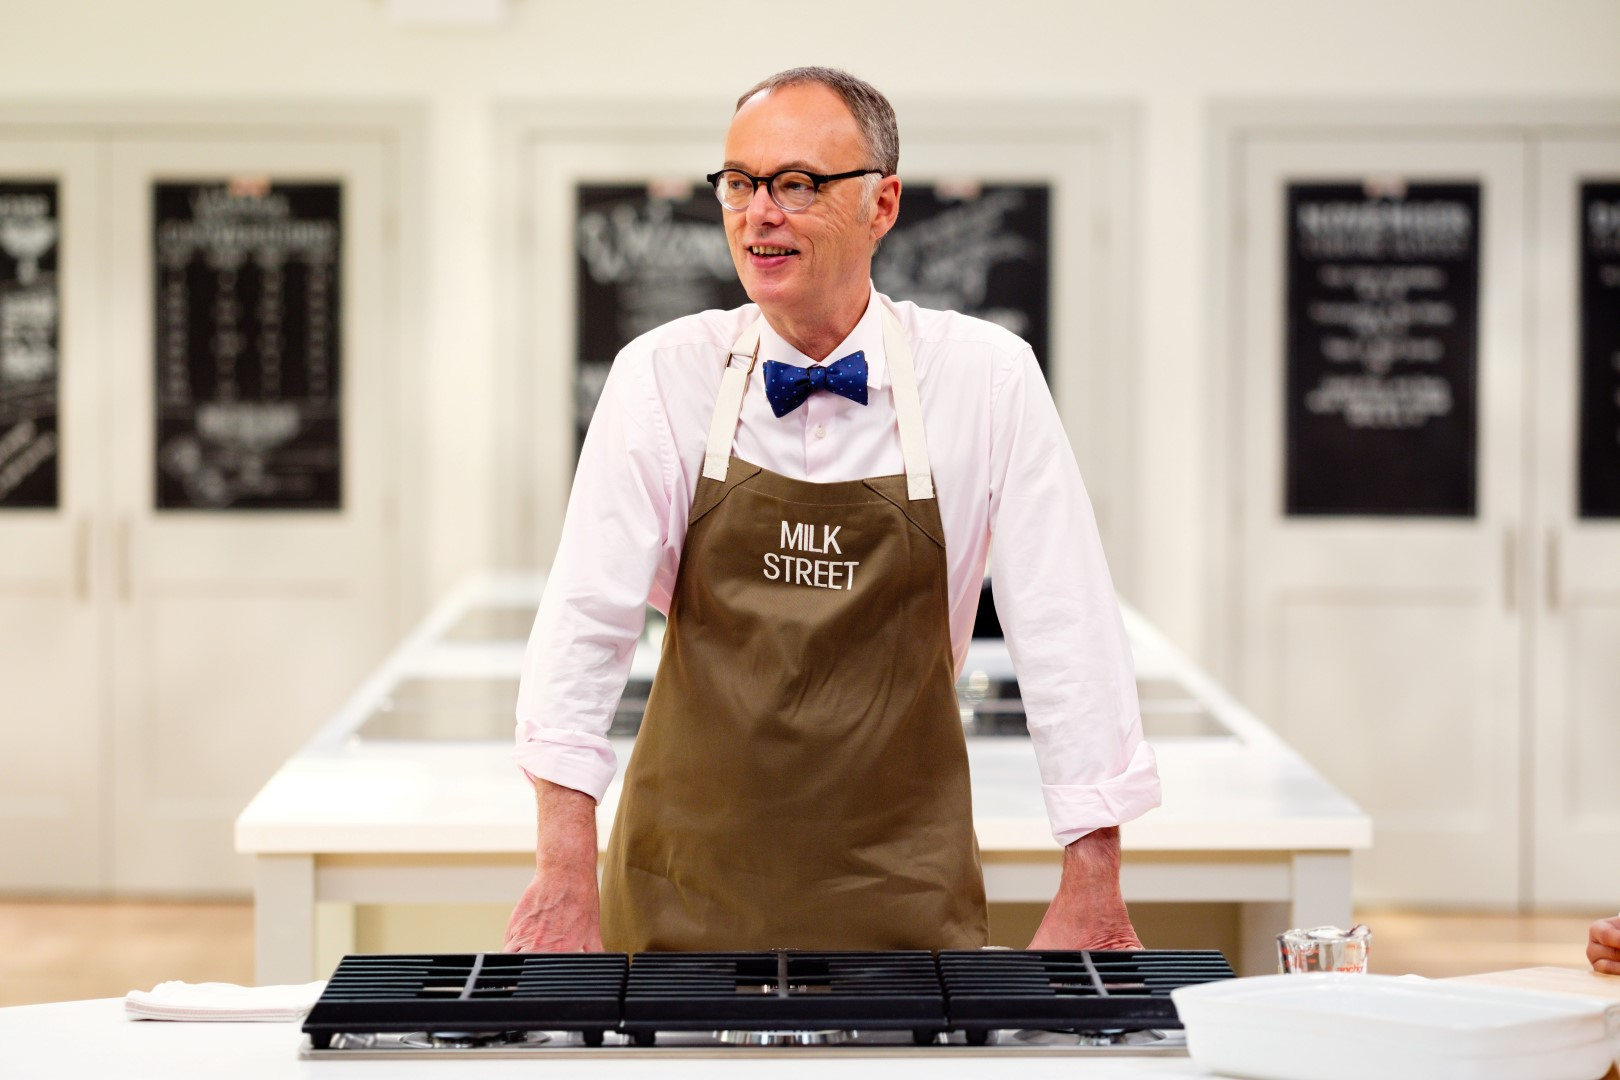 Christopher Kimball Milk Street's rye on rye sticky toffee pudding recipe